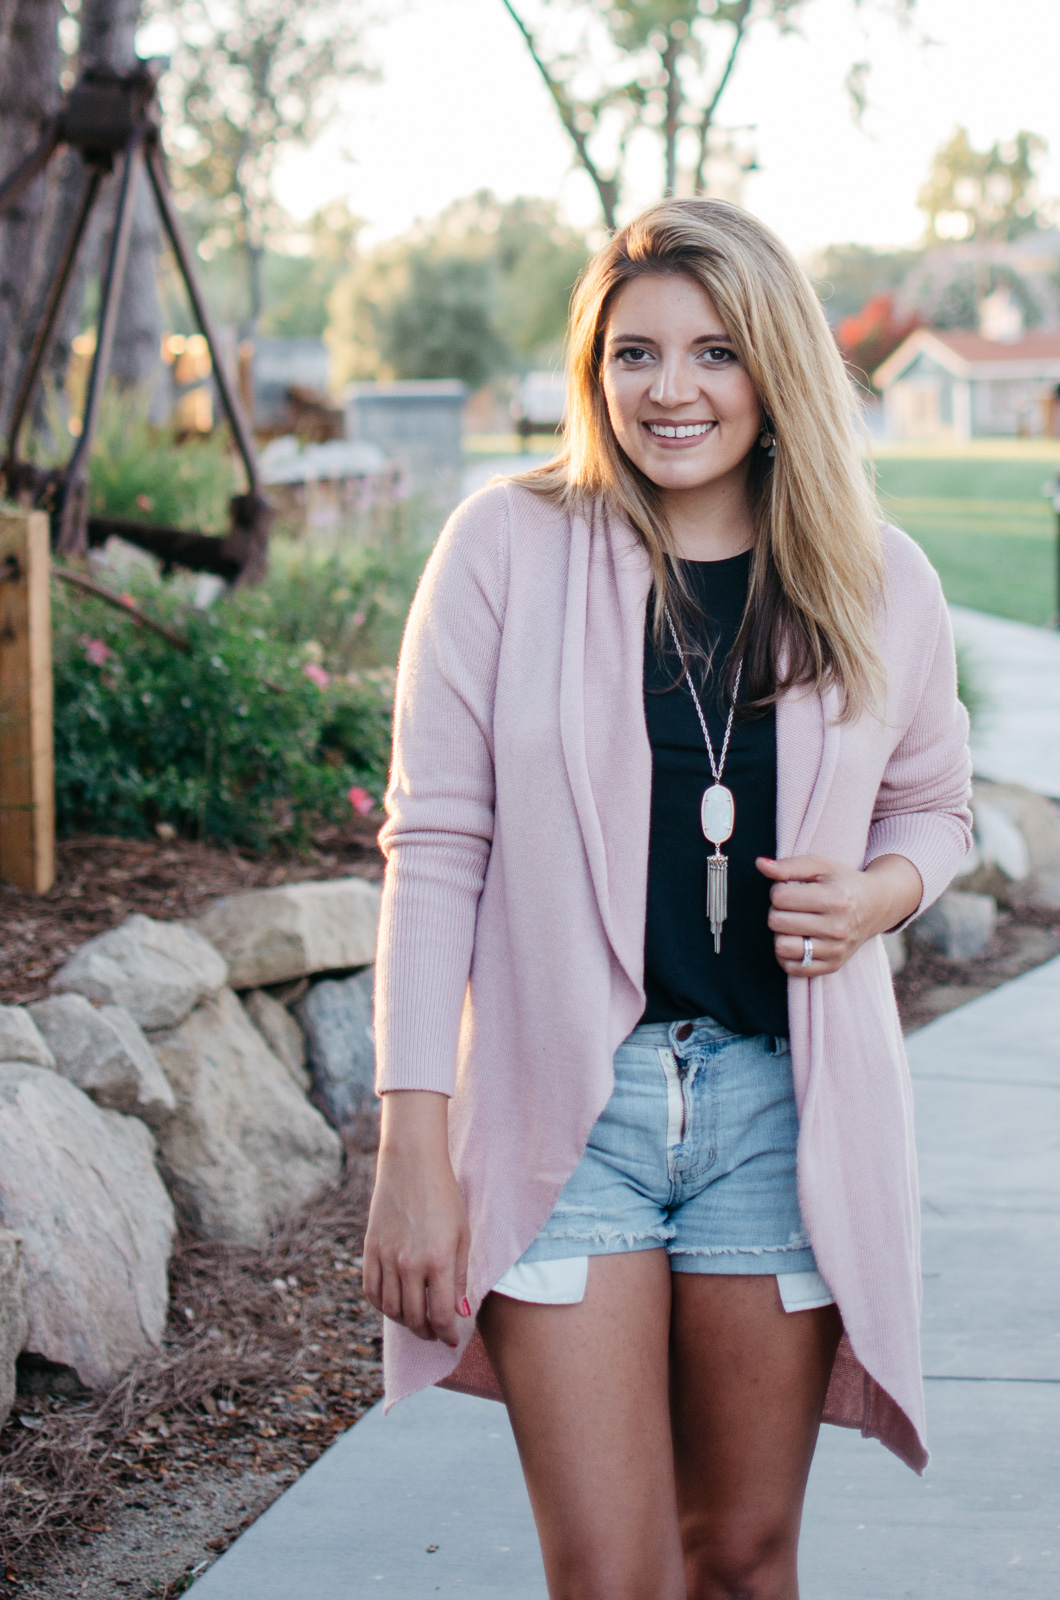 how to wear a cardigan summer - early Fall outfit ideas | bylaurenm.com